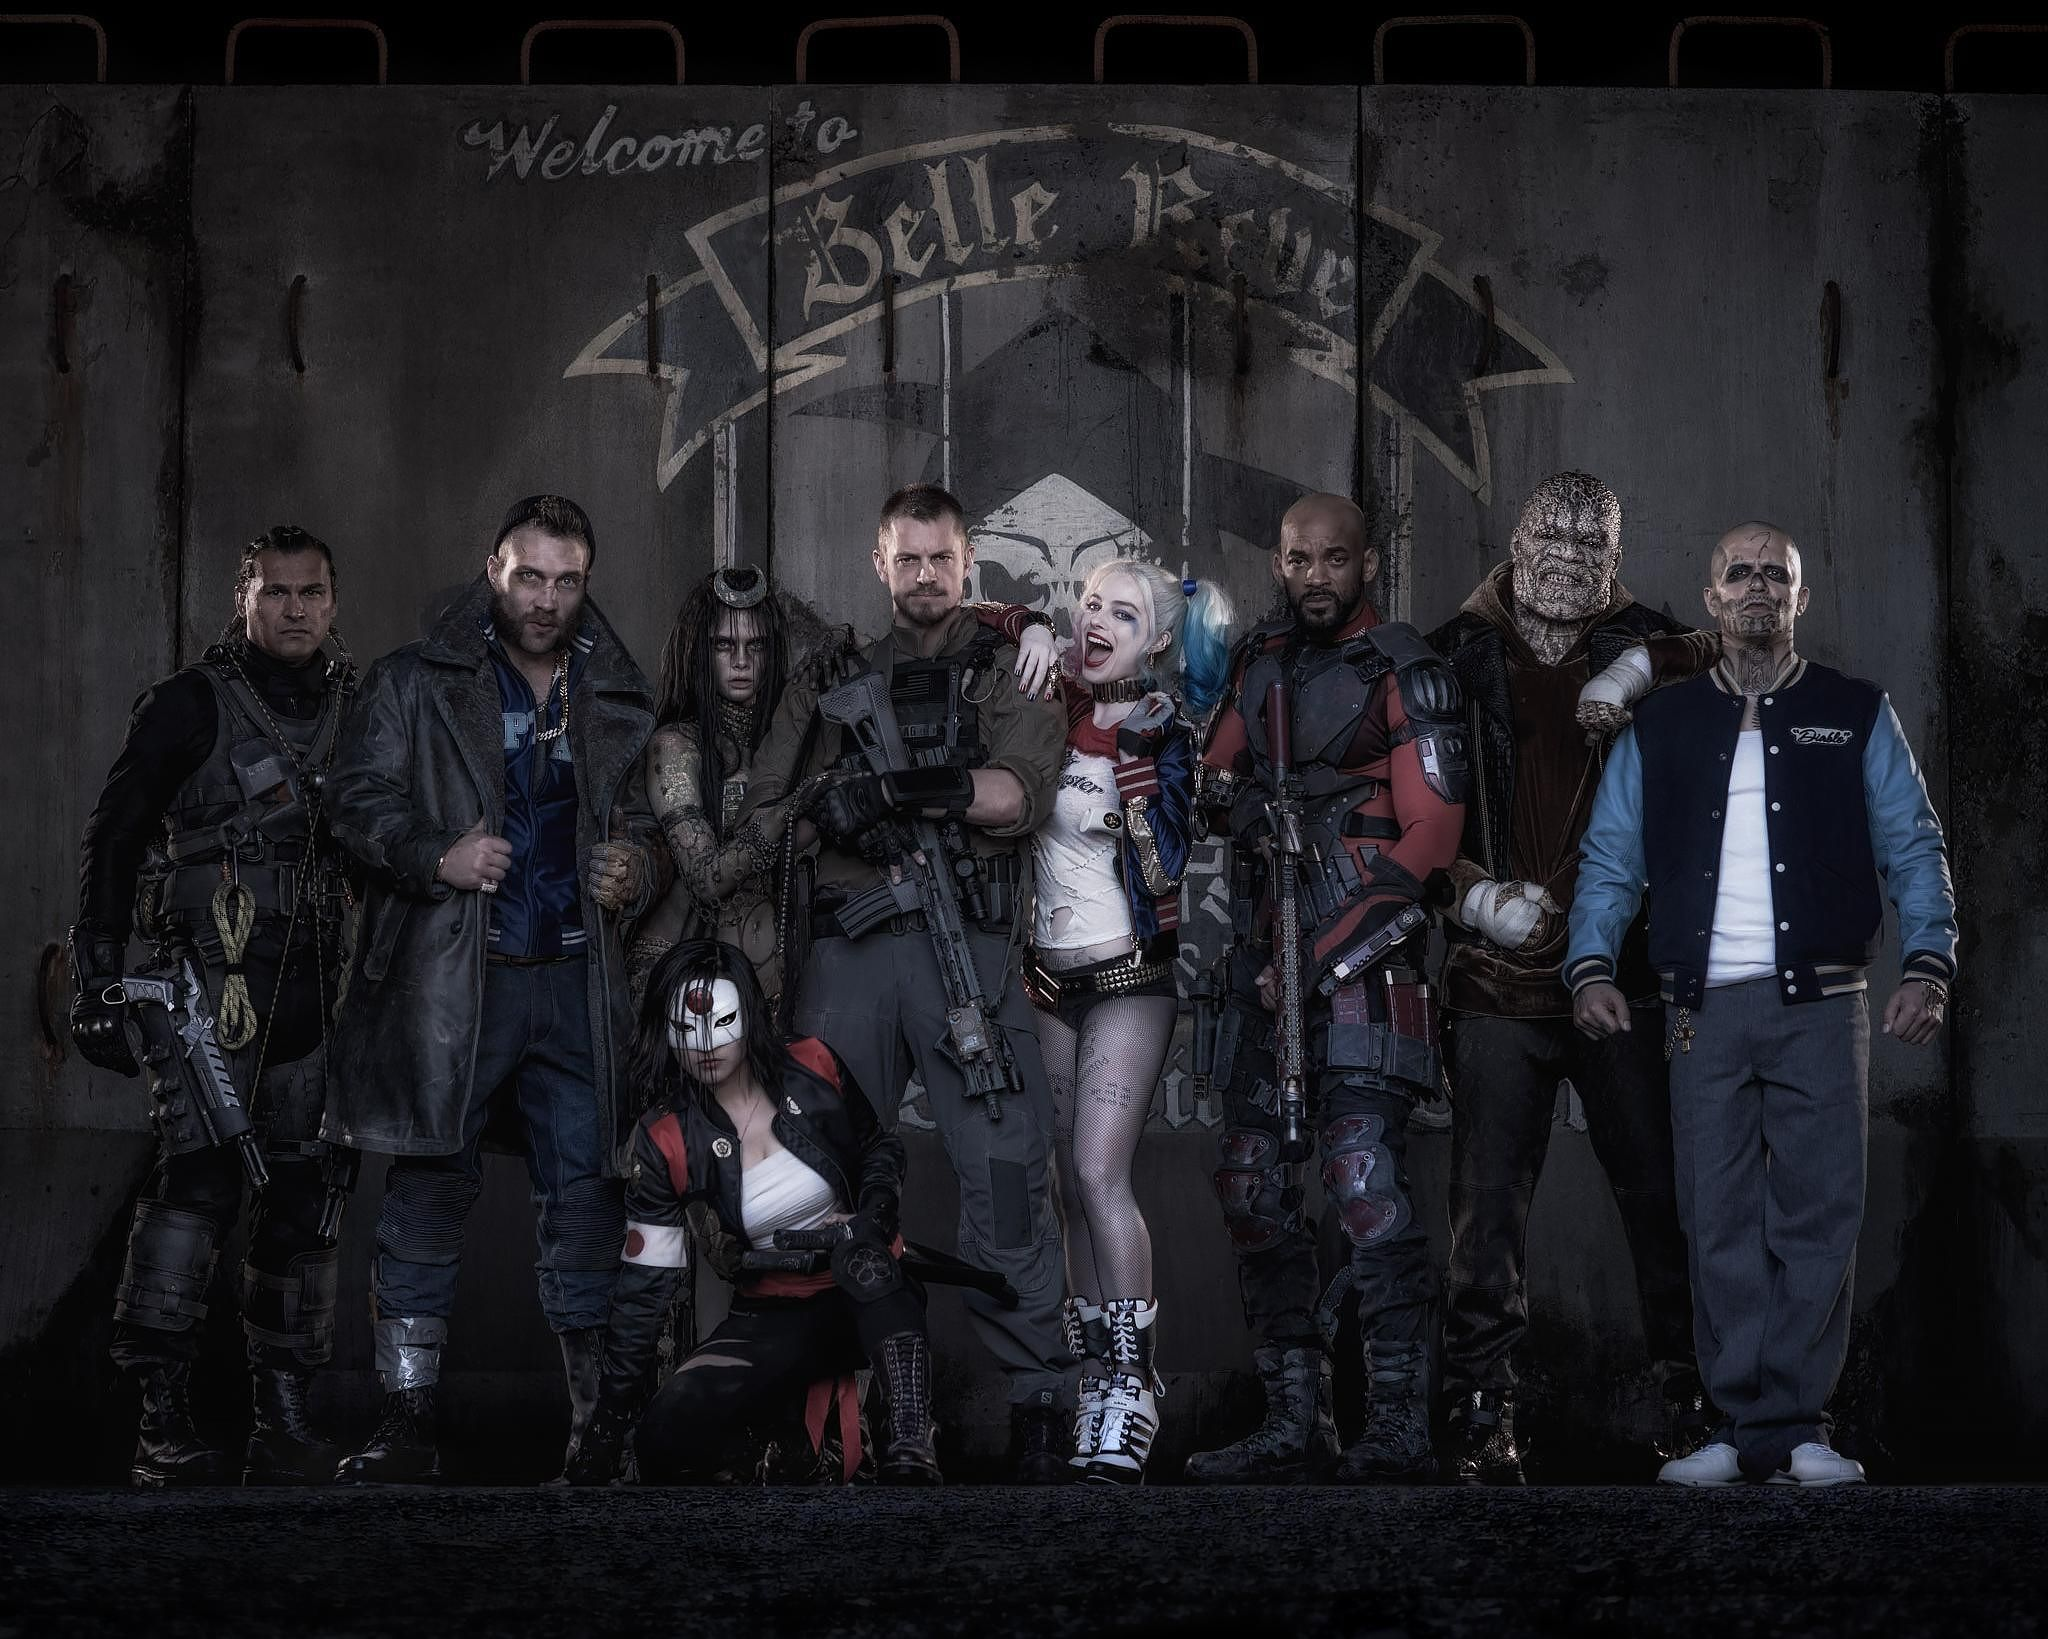 deadshot-killer-croc-harley-quinn-every-suicide-squad-member-s-origin-story-in-less-tha-394449